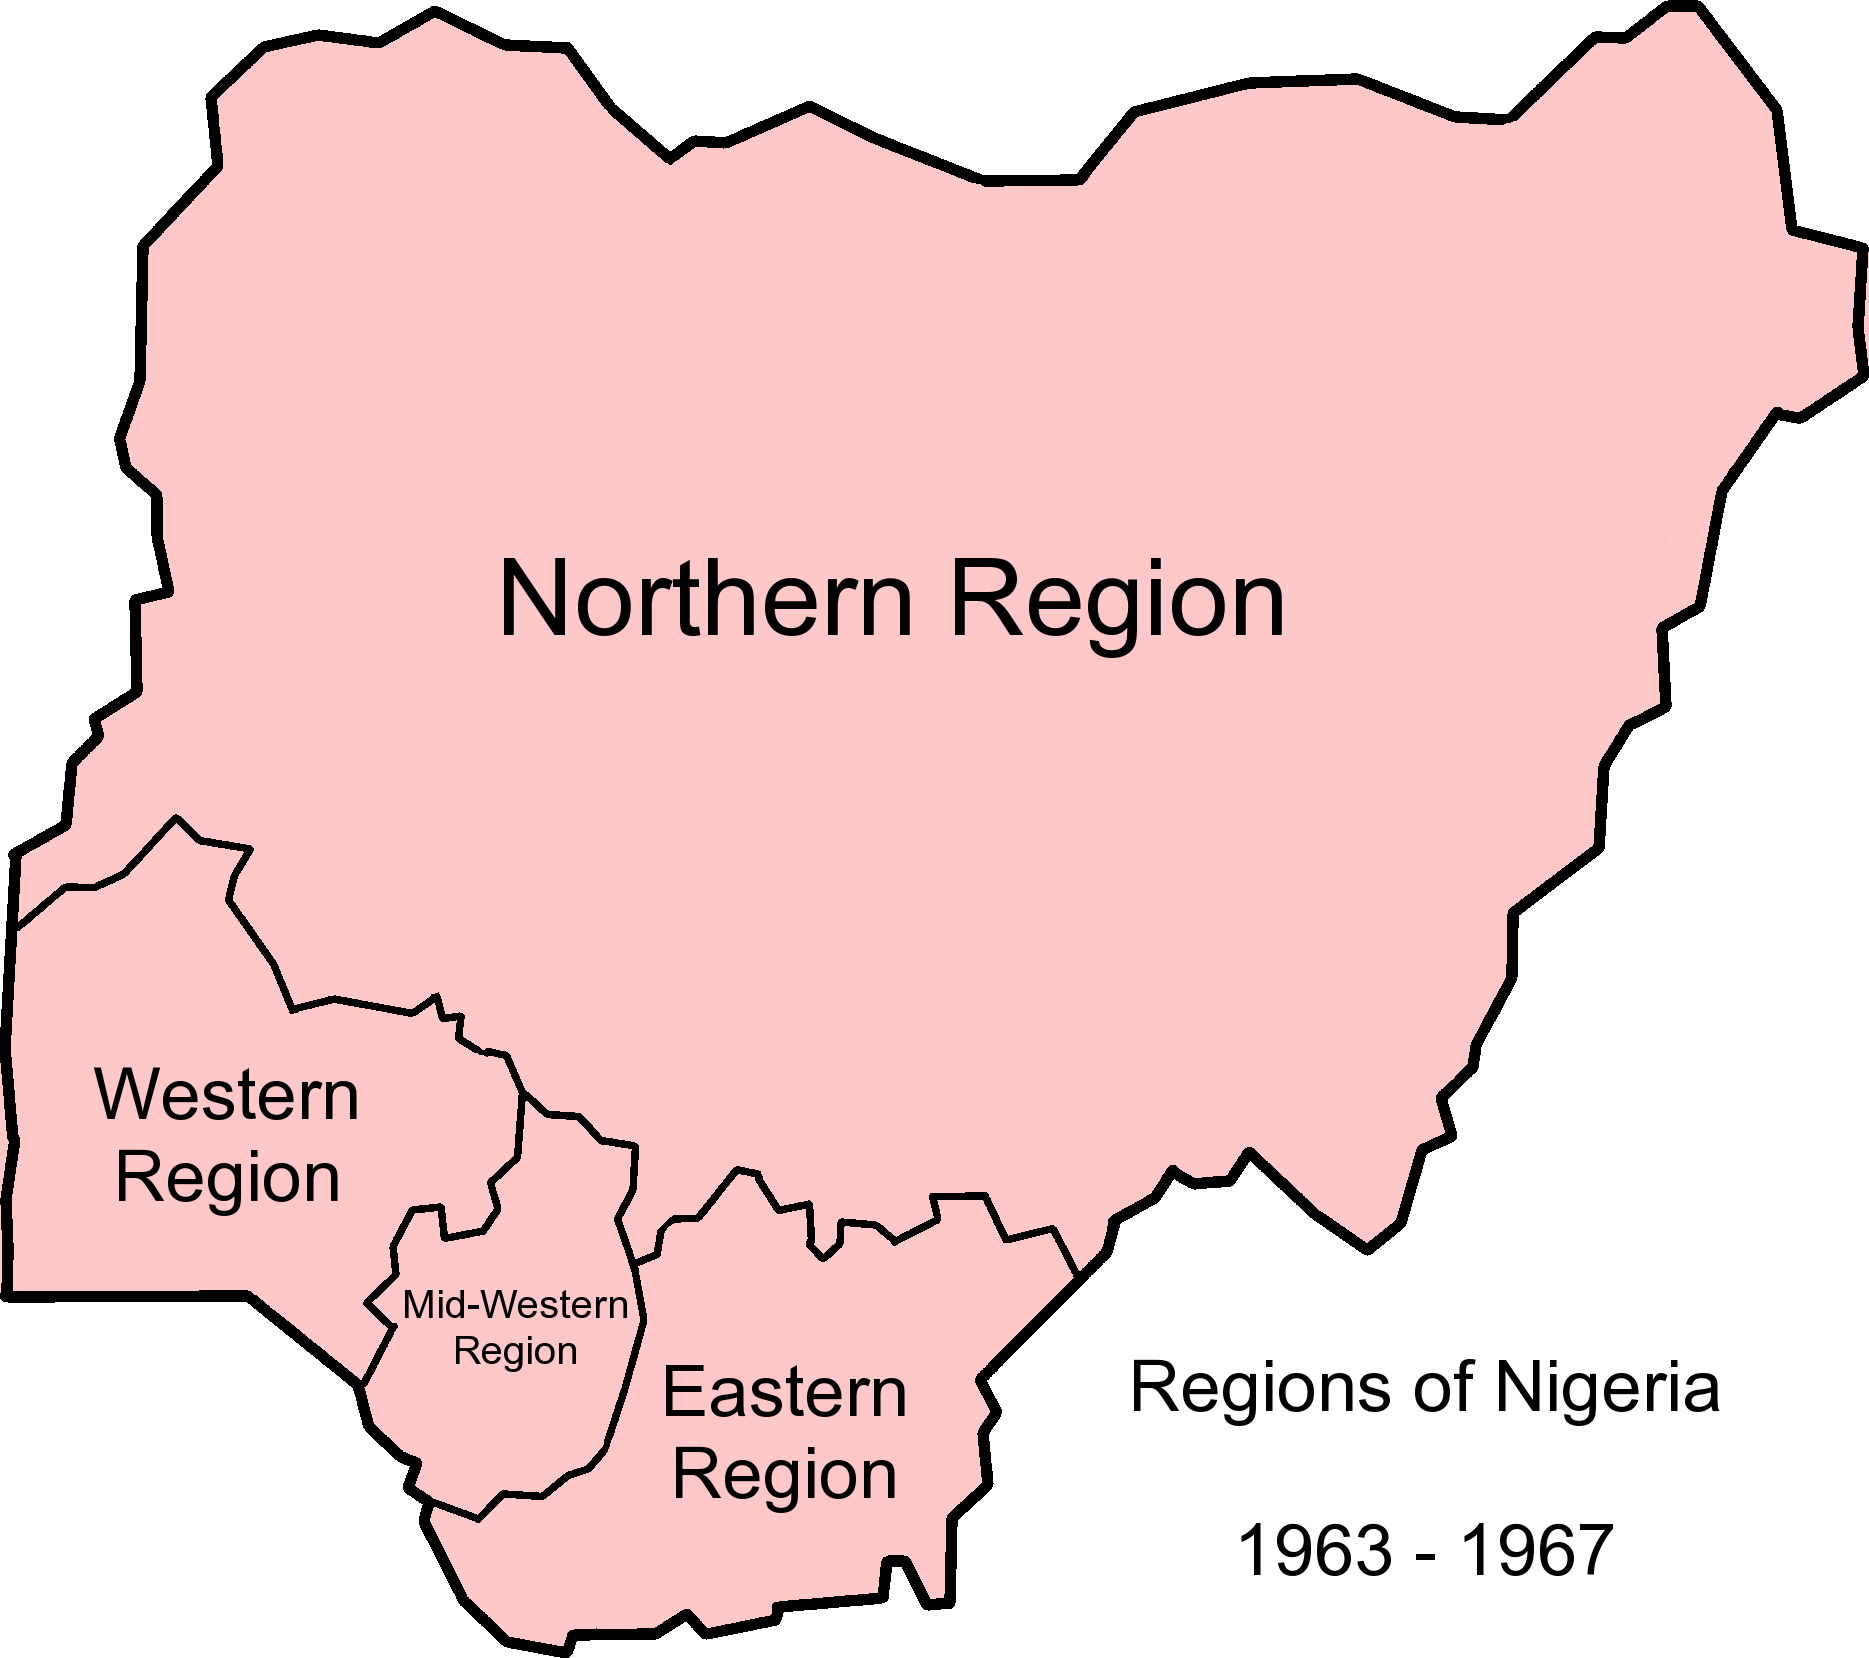 ogun state map with Nigeria Regionen Karte on 3 furthermore Yobe State Zip Code Map besides Figs also The Violent Road Nigeria South East furthermore 2 6401346 49592.